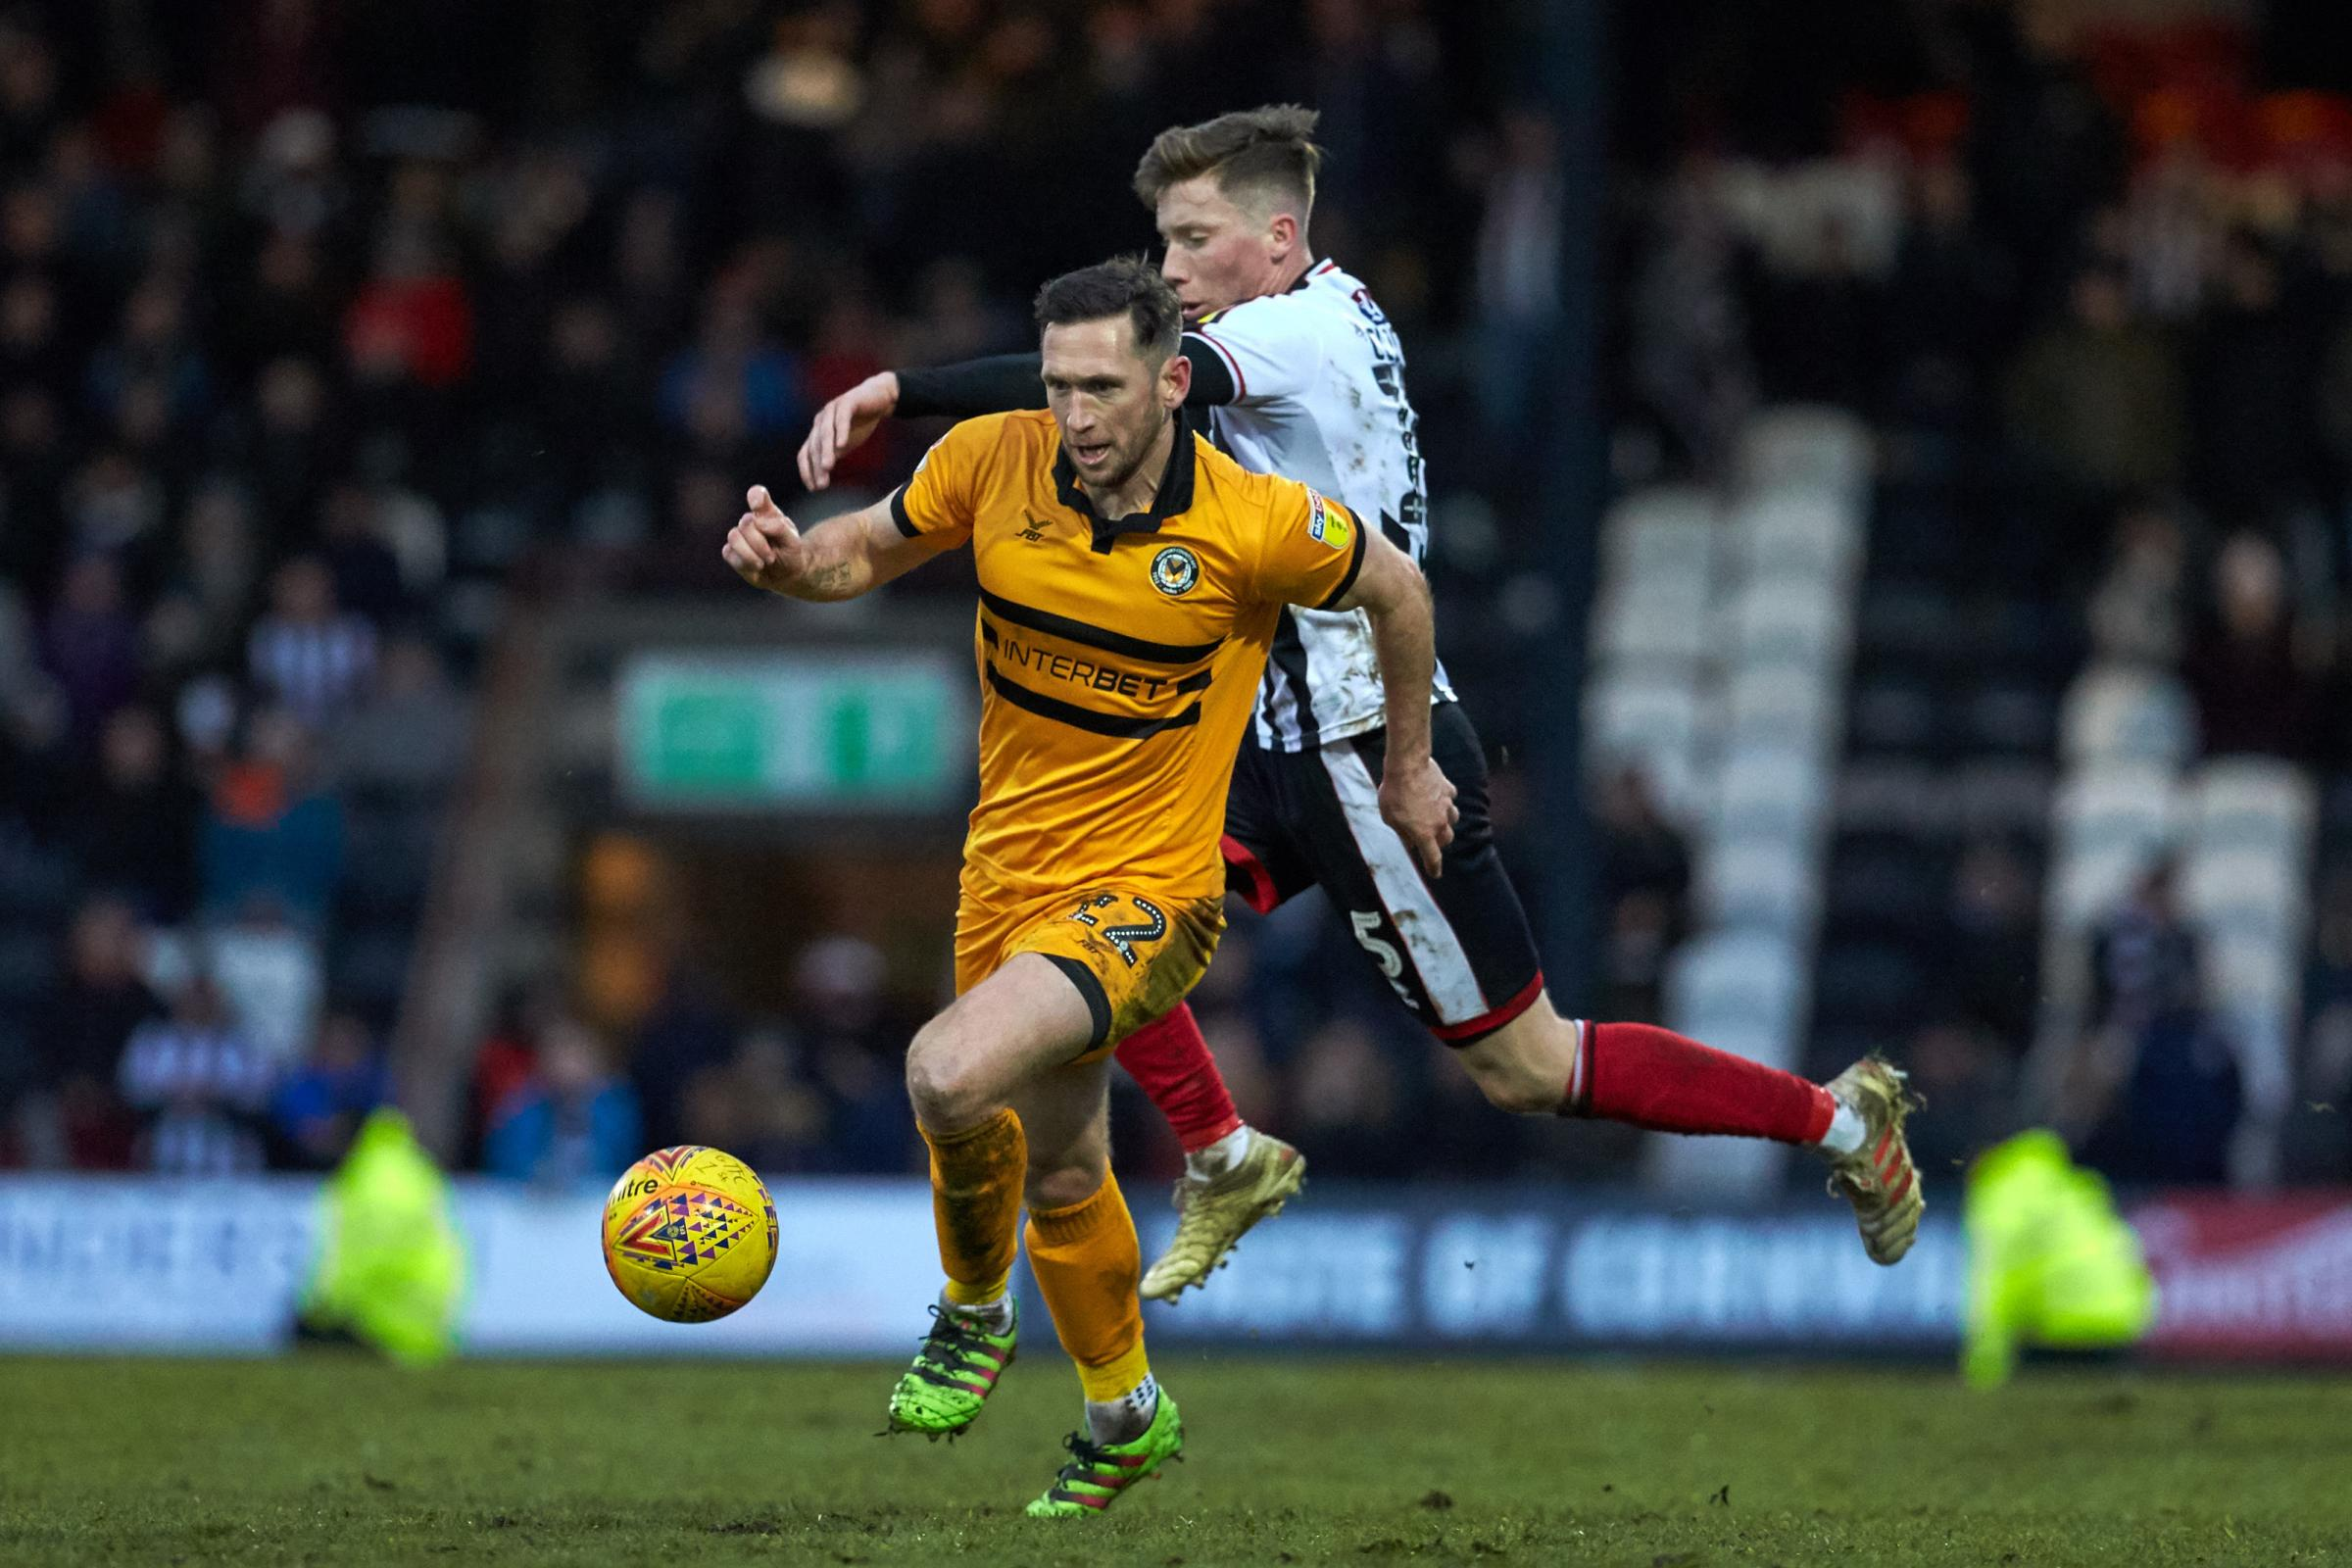 INJURED: Midfielder Andrew Crofts hasn't featured for Newport County since the defeat at Grimsby Town on February 2. Pictures: Huw Evans Agency